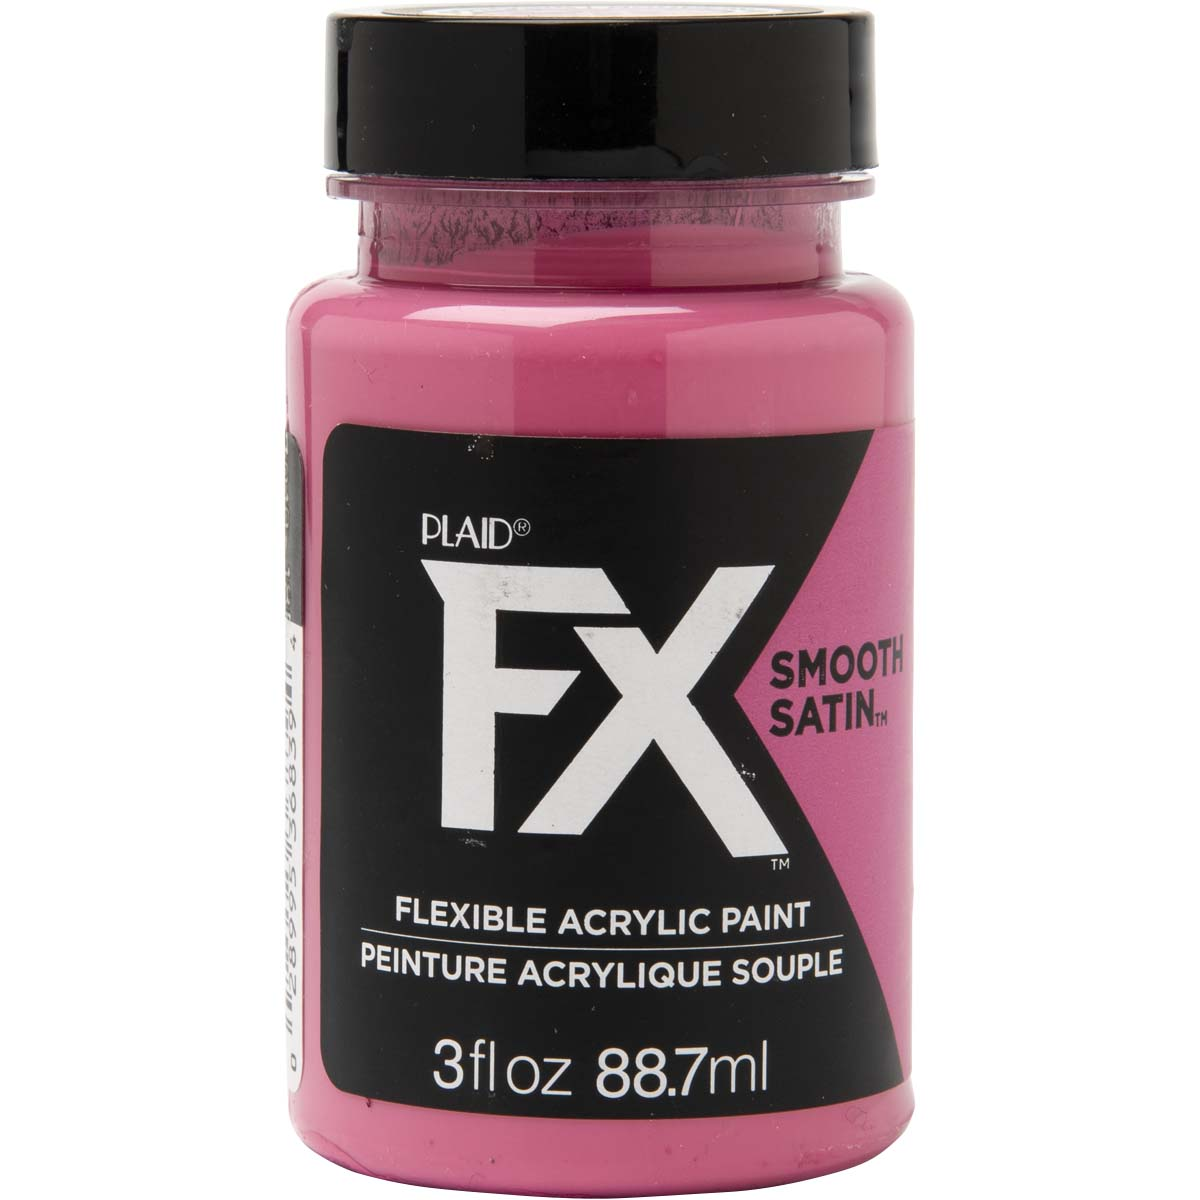 PlaidFX Smooth Satin Flexible Acrylic Paint - Enchanted, 3 oz. - 36839